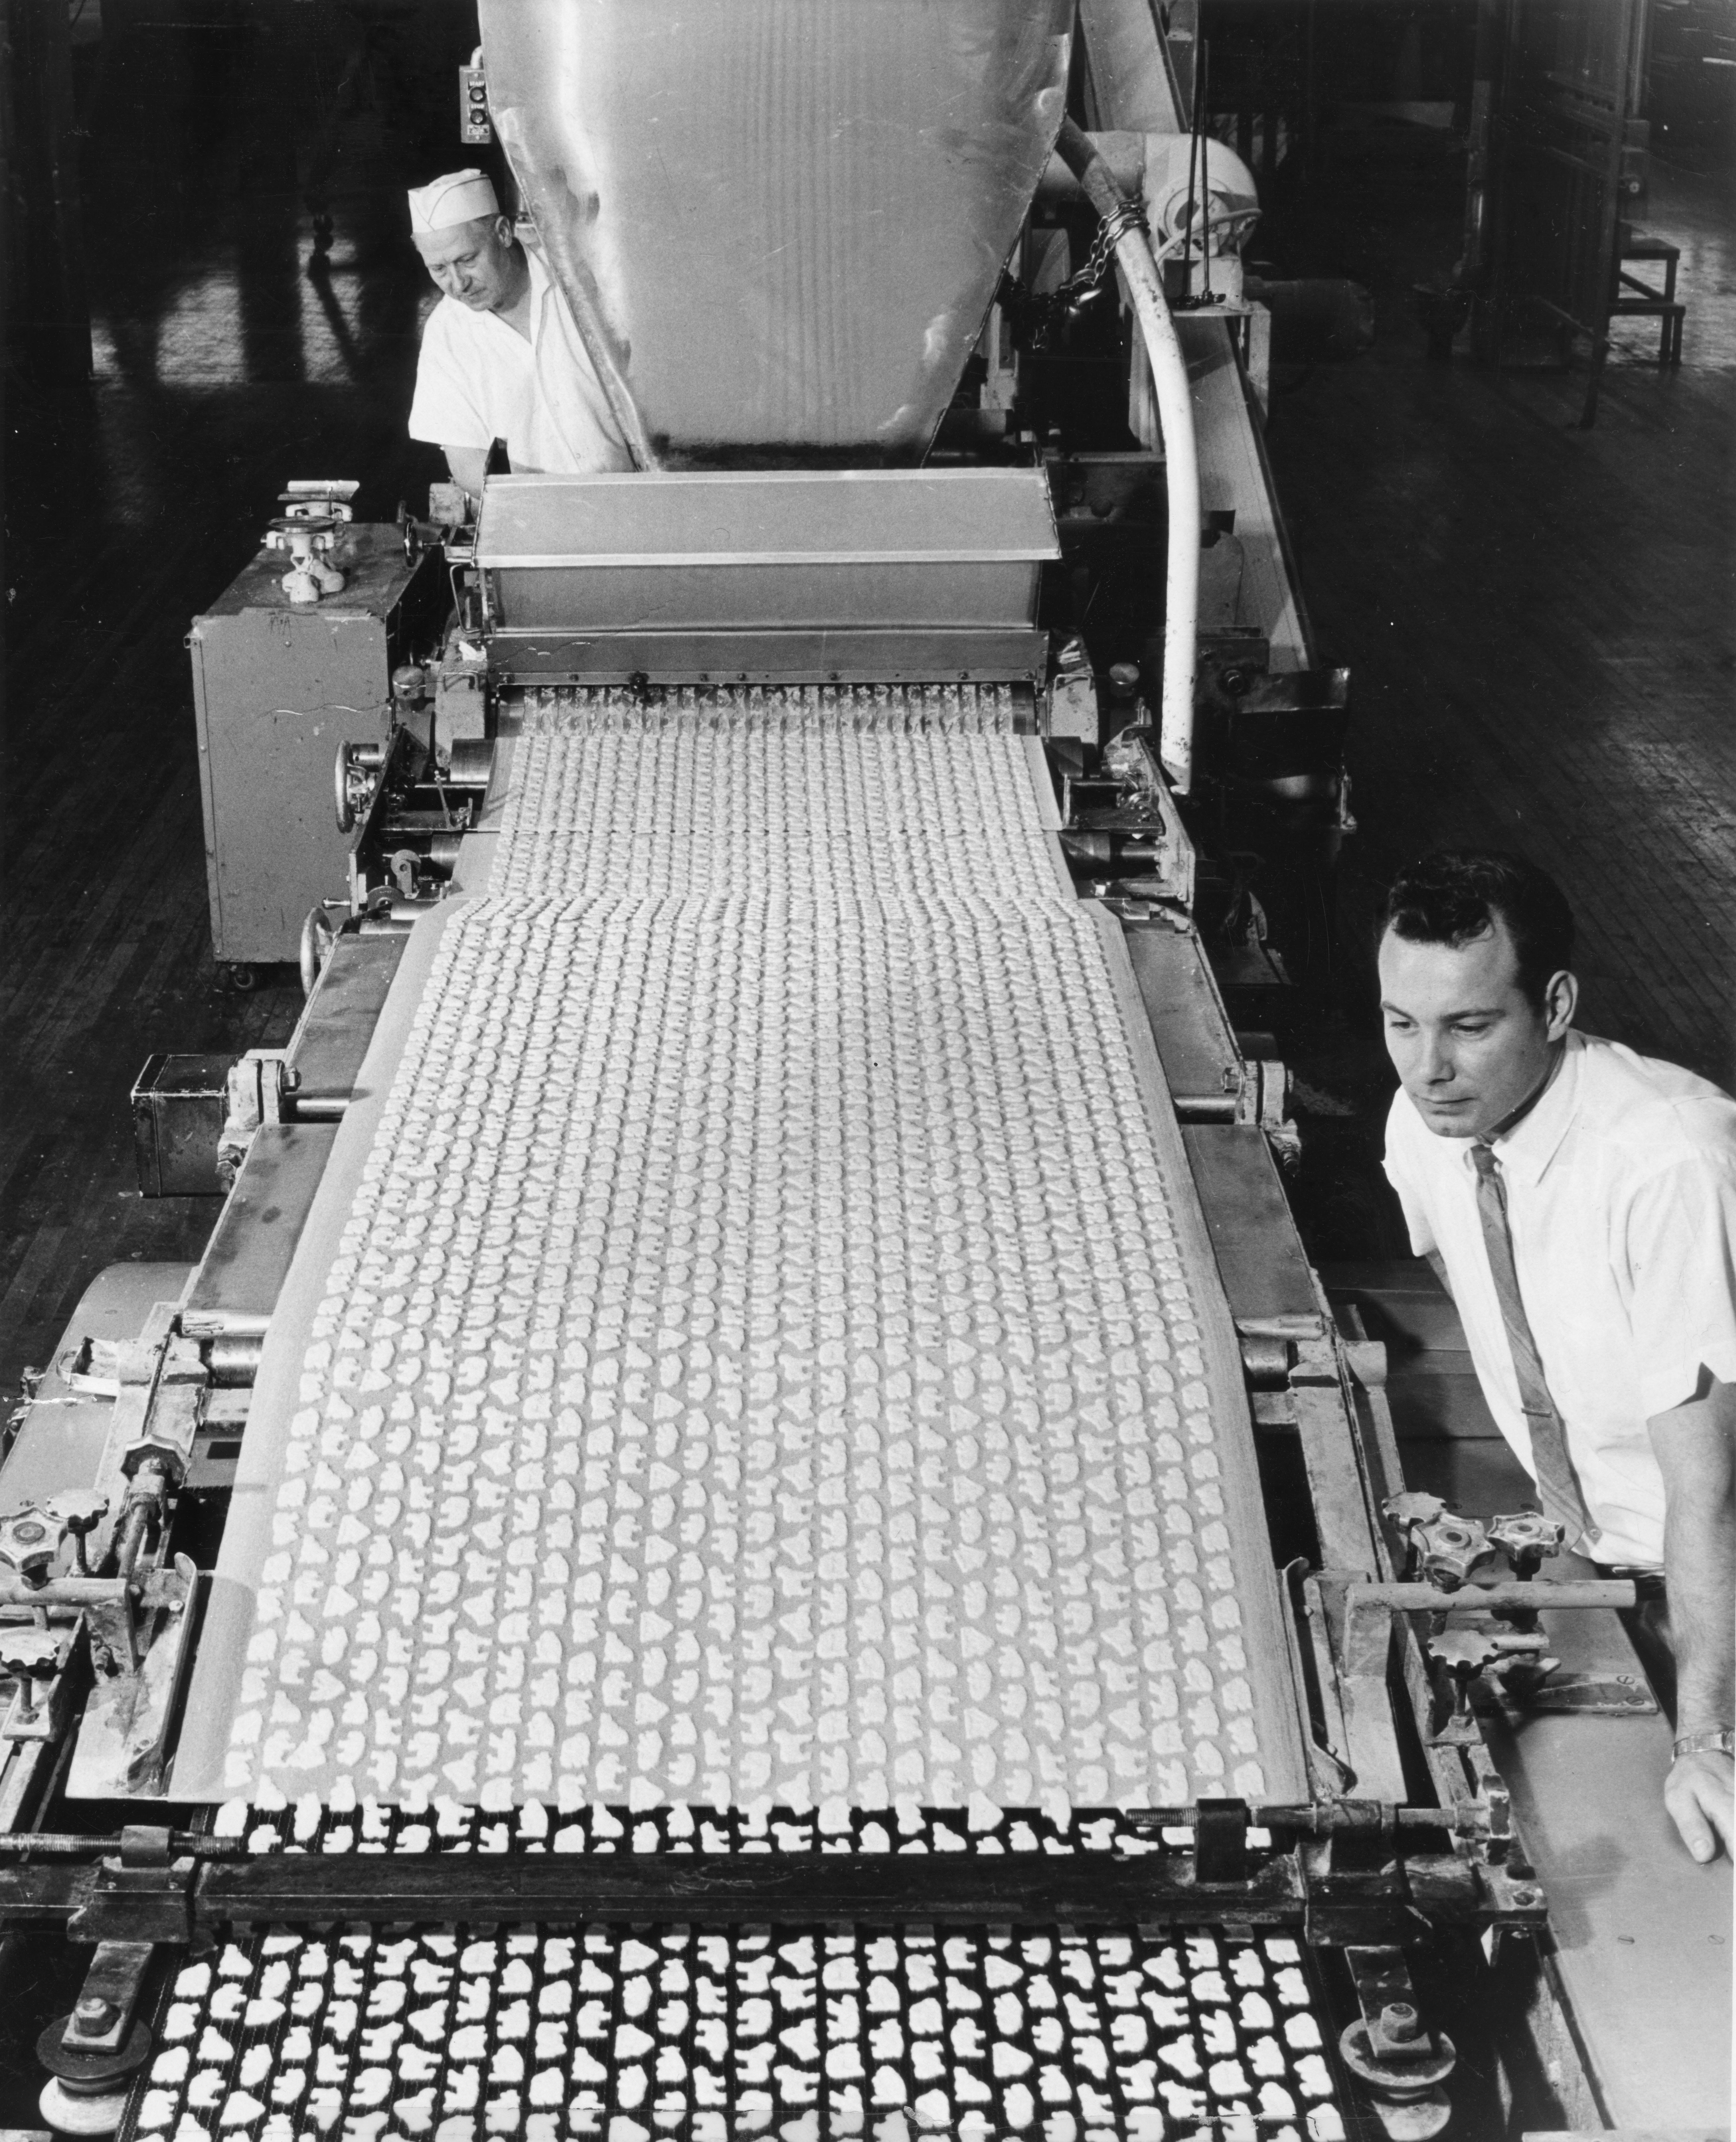 Rows of animals start out as cookie-cutter dough on a four-block ride at the Nabisco plant in Fair Lawn, N.J., on May 4, 1969. They will emerge as Barnum's Animal Crackers.